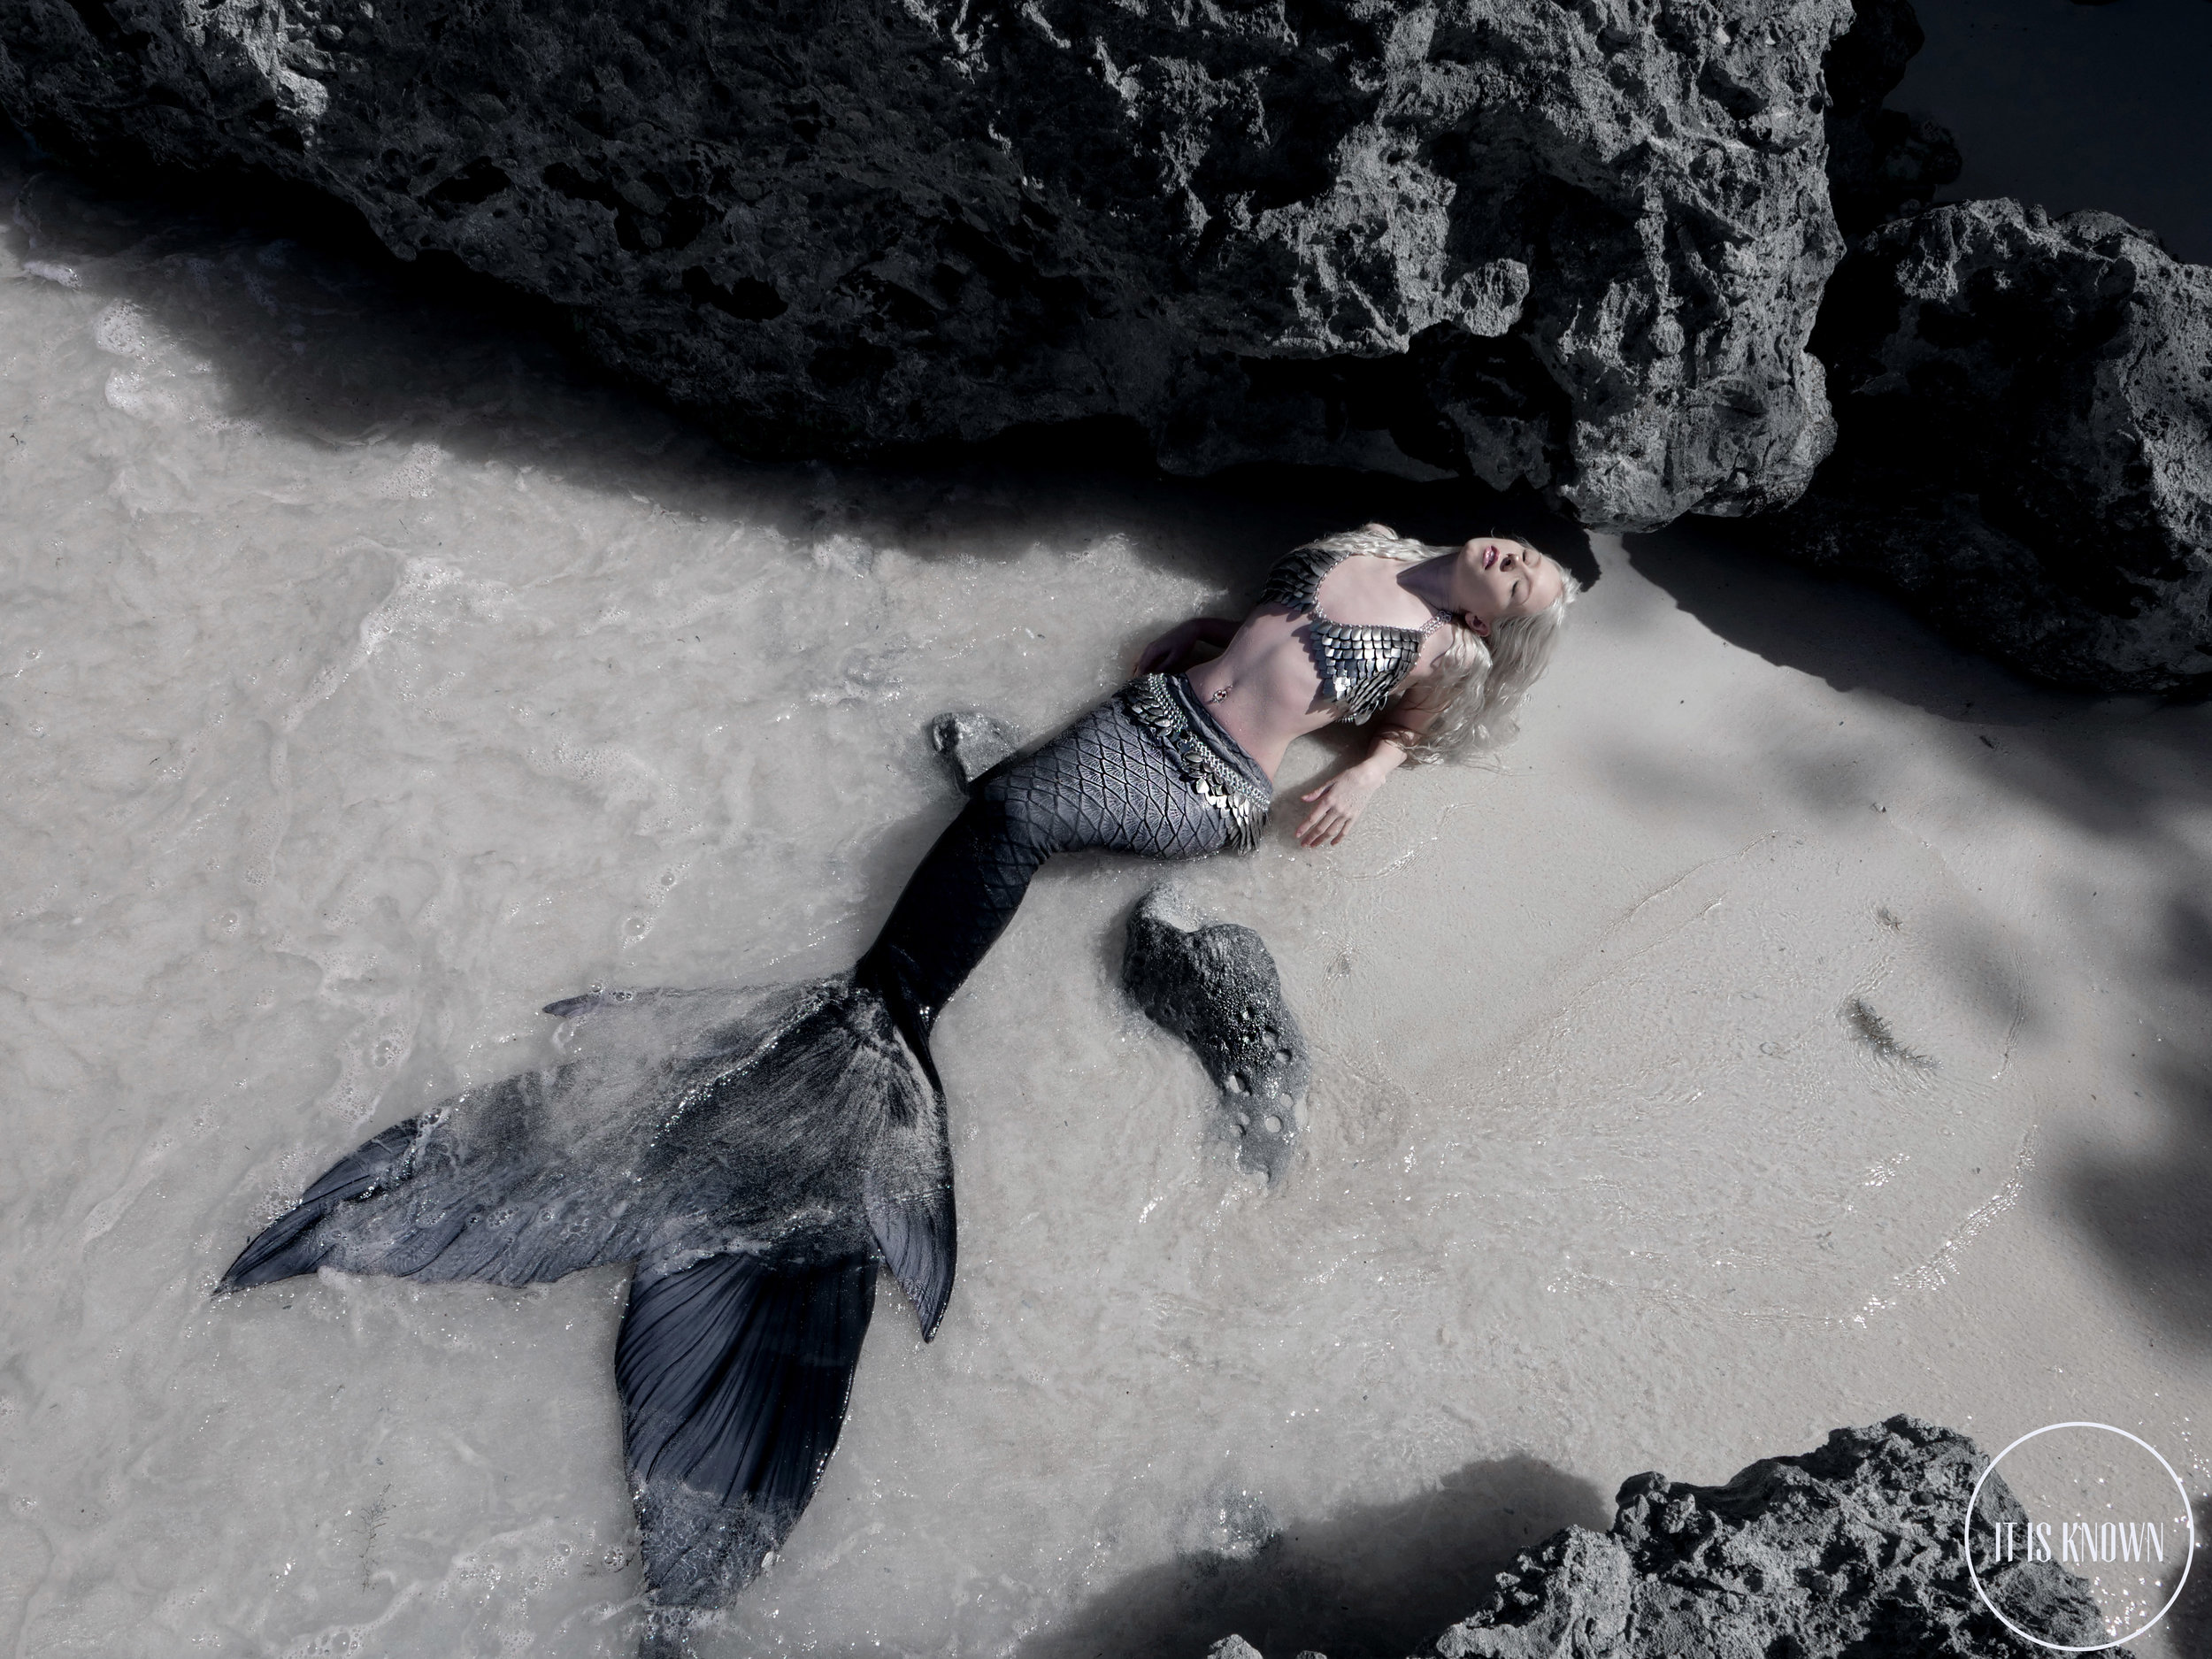 Erika Rodgers (https://www.youtube.com/c/erikarodgers1) in Barbados  Mermaid tail: https://www.finfolkproductions.com/ with scalemaille bra and belt by It Is Known